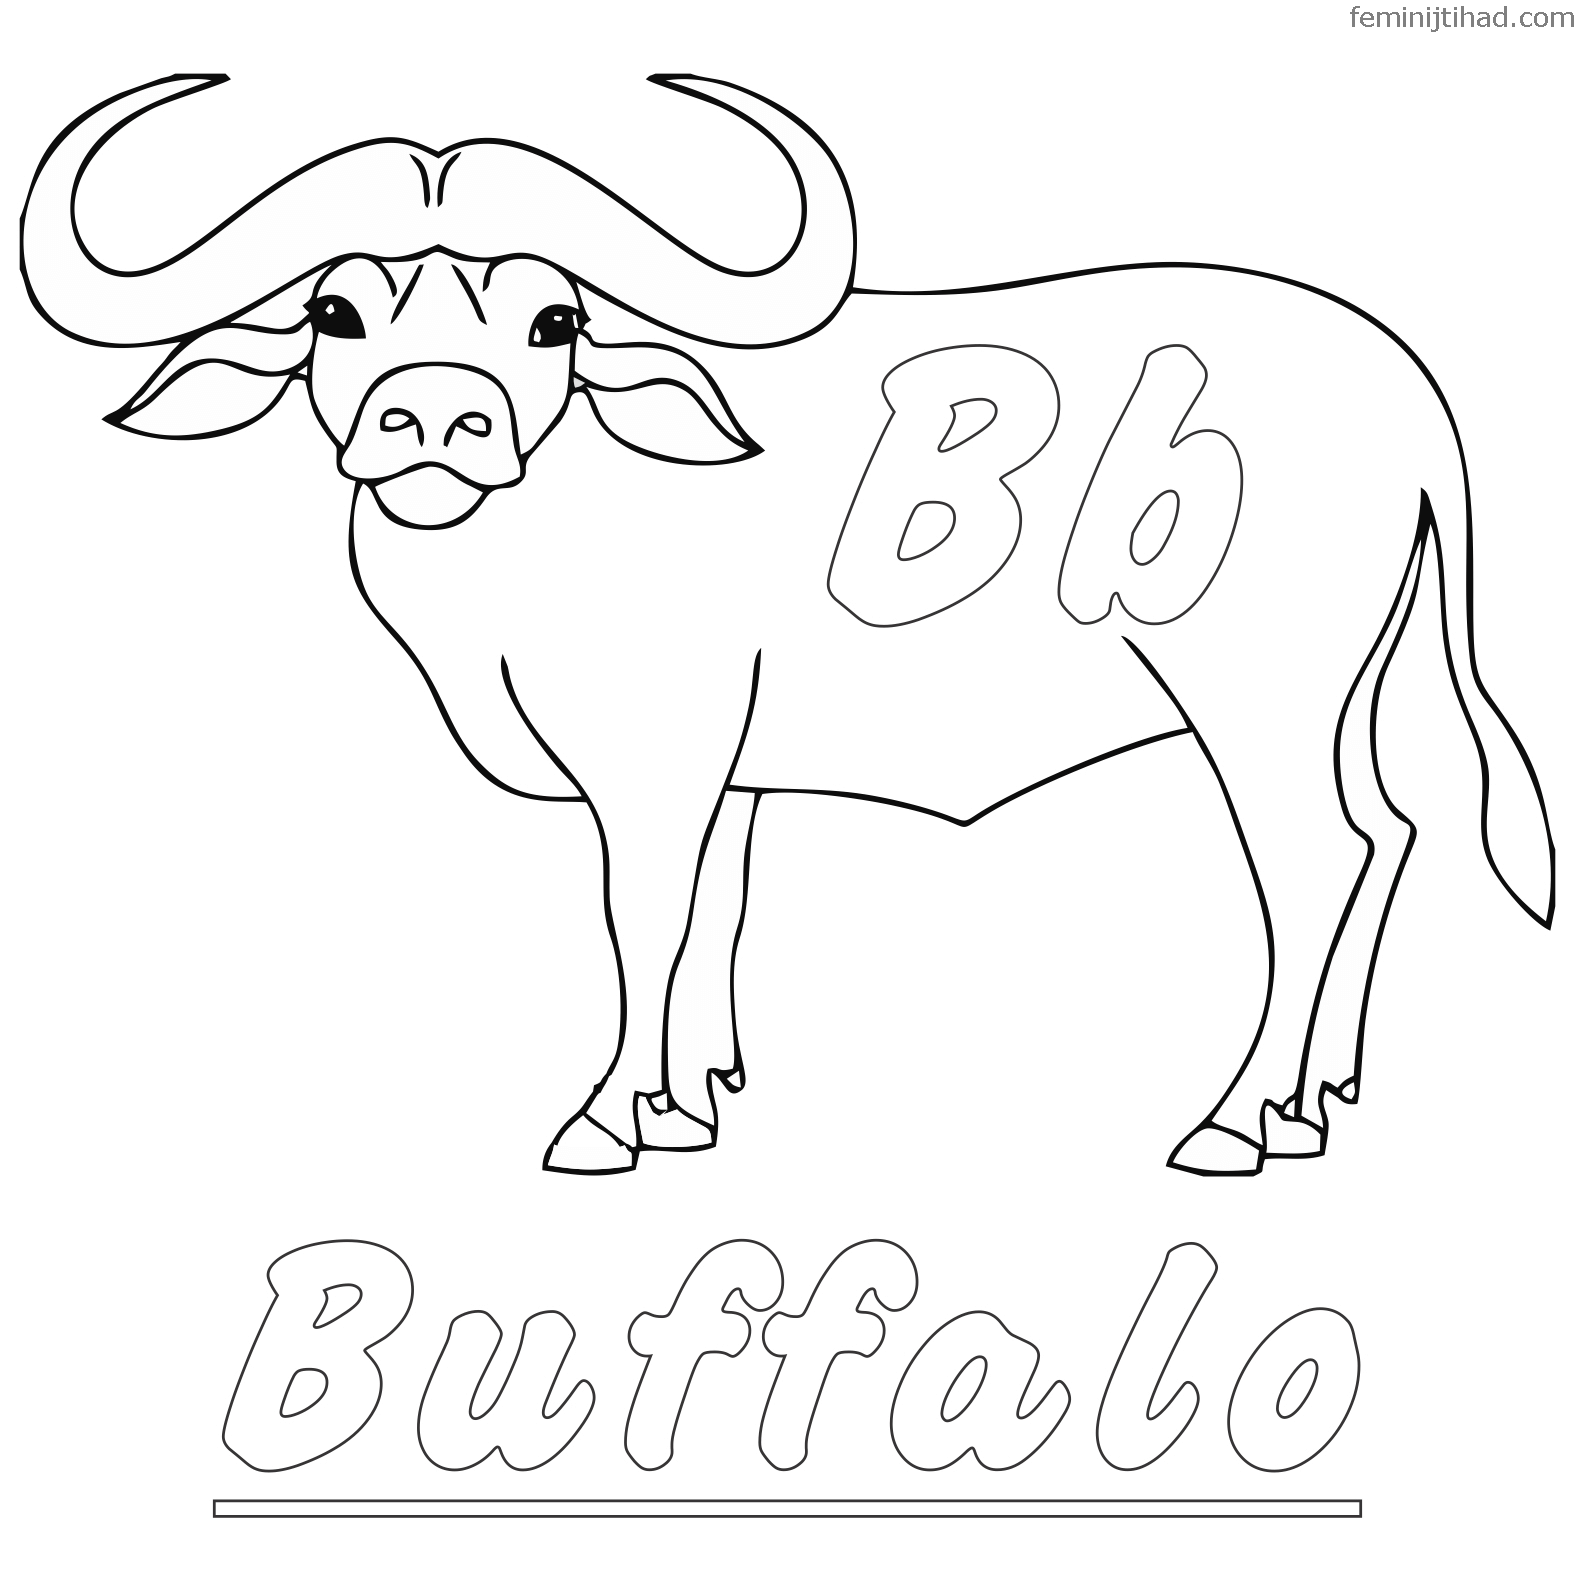 buffalo coloring pages 062613 free coloring pages and coloring books for kids pages coloring buffalo